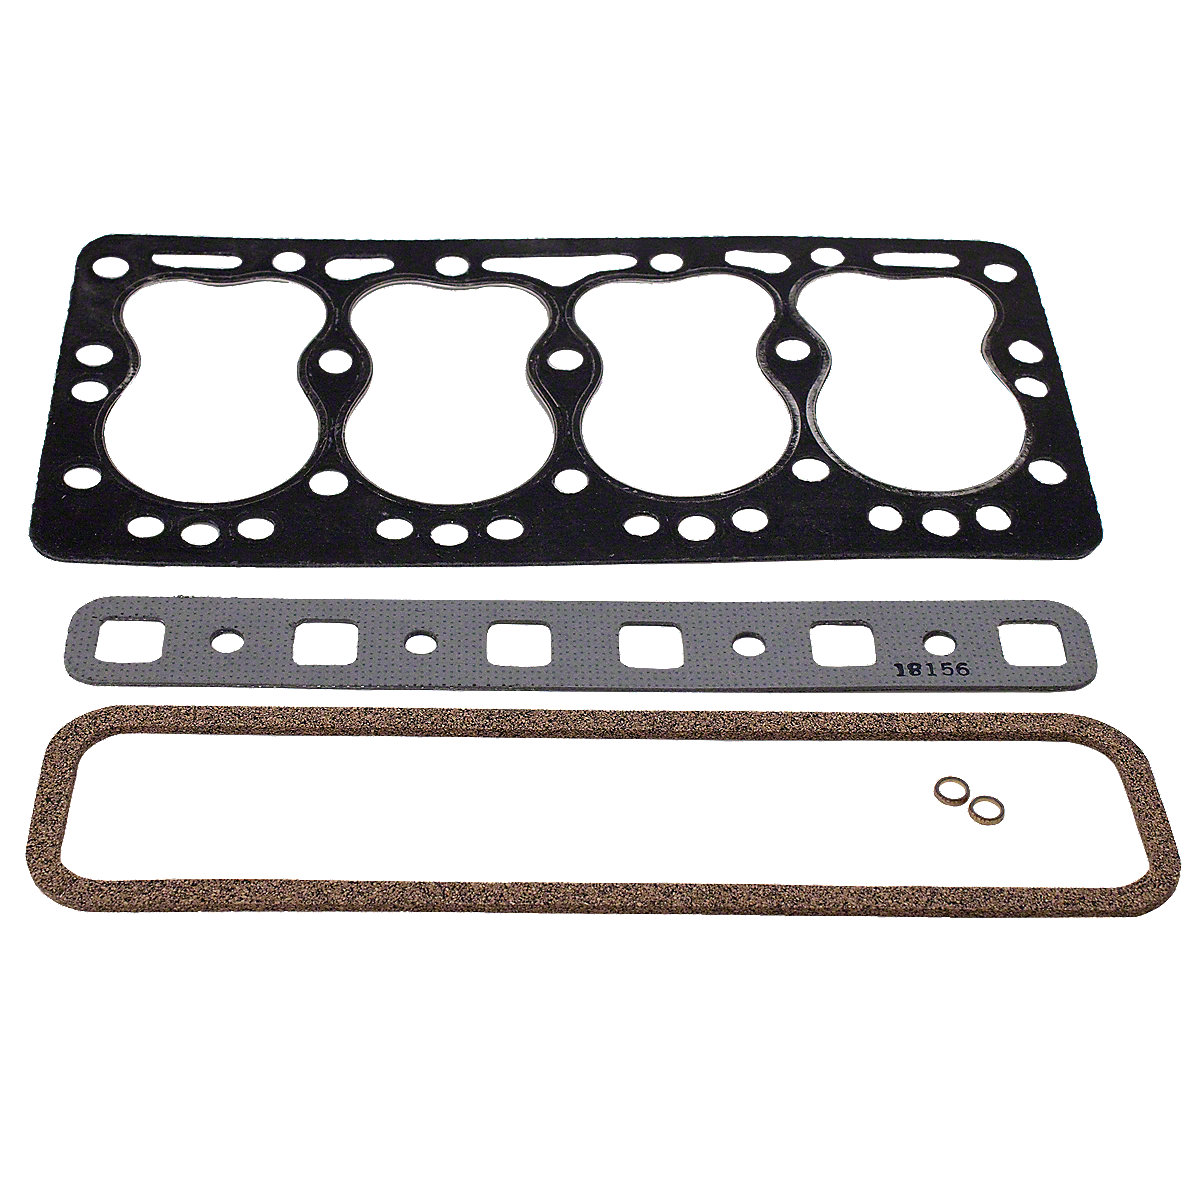 Cylinder Head Gasket Set For Massey Harris: Pony.